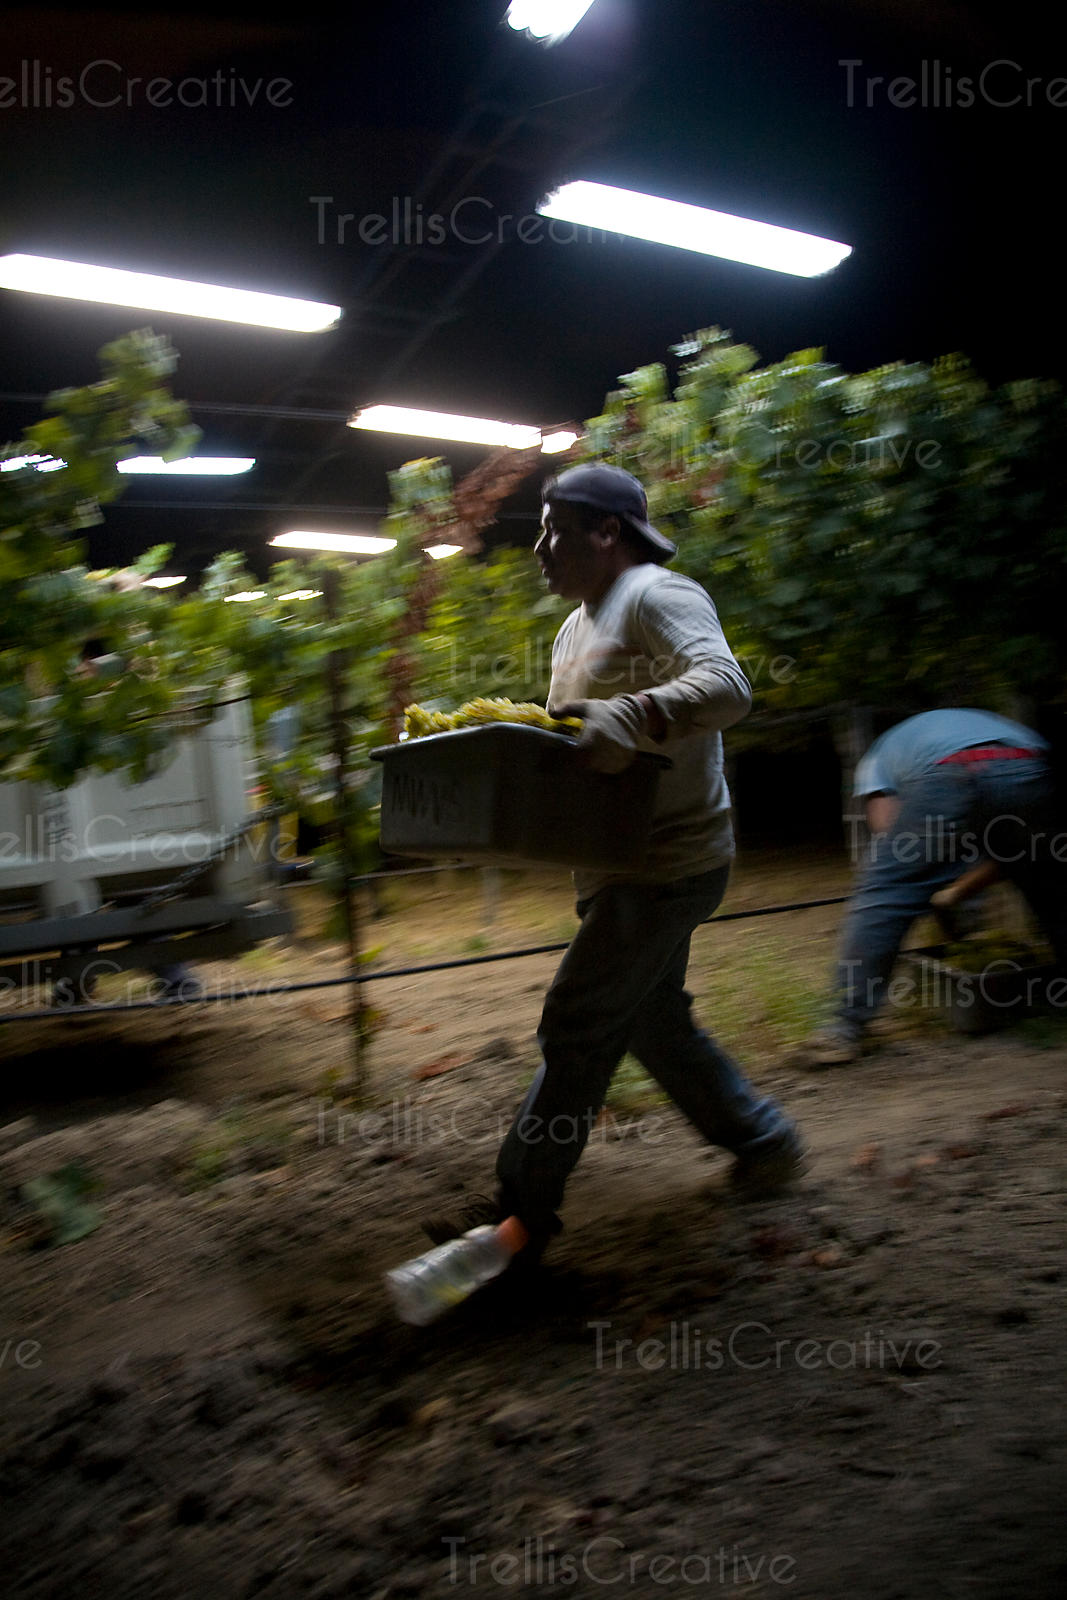 Workers run to empty bins of harvested chardonnay grapes during midnight harvest